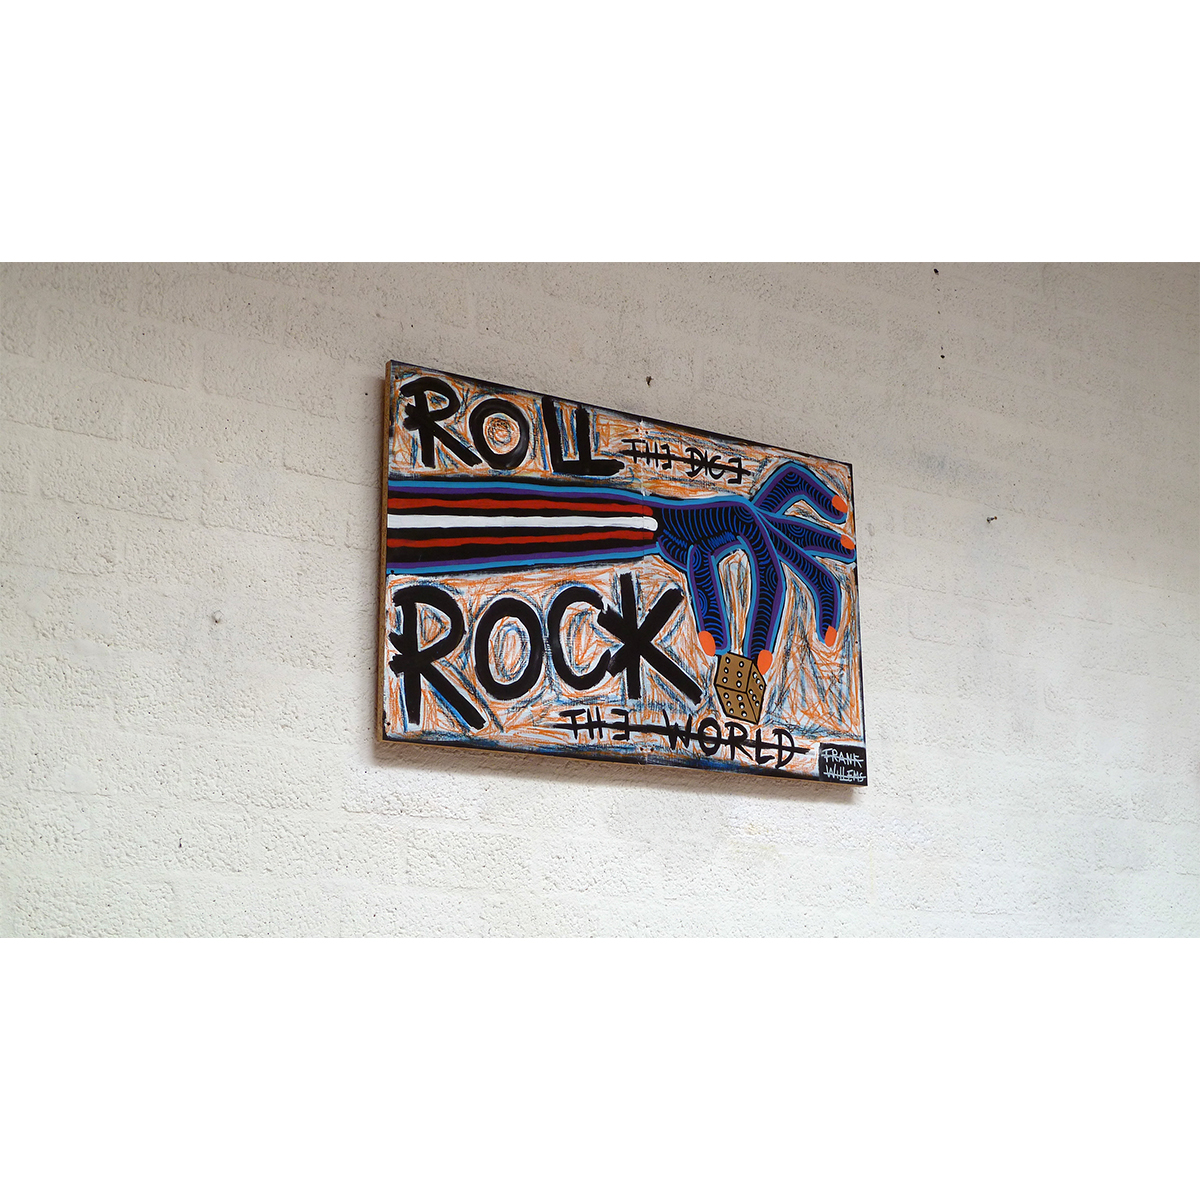 ROLL AND ROCK 01 - Frank Willems